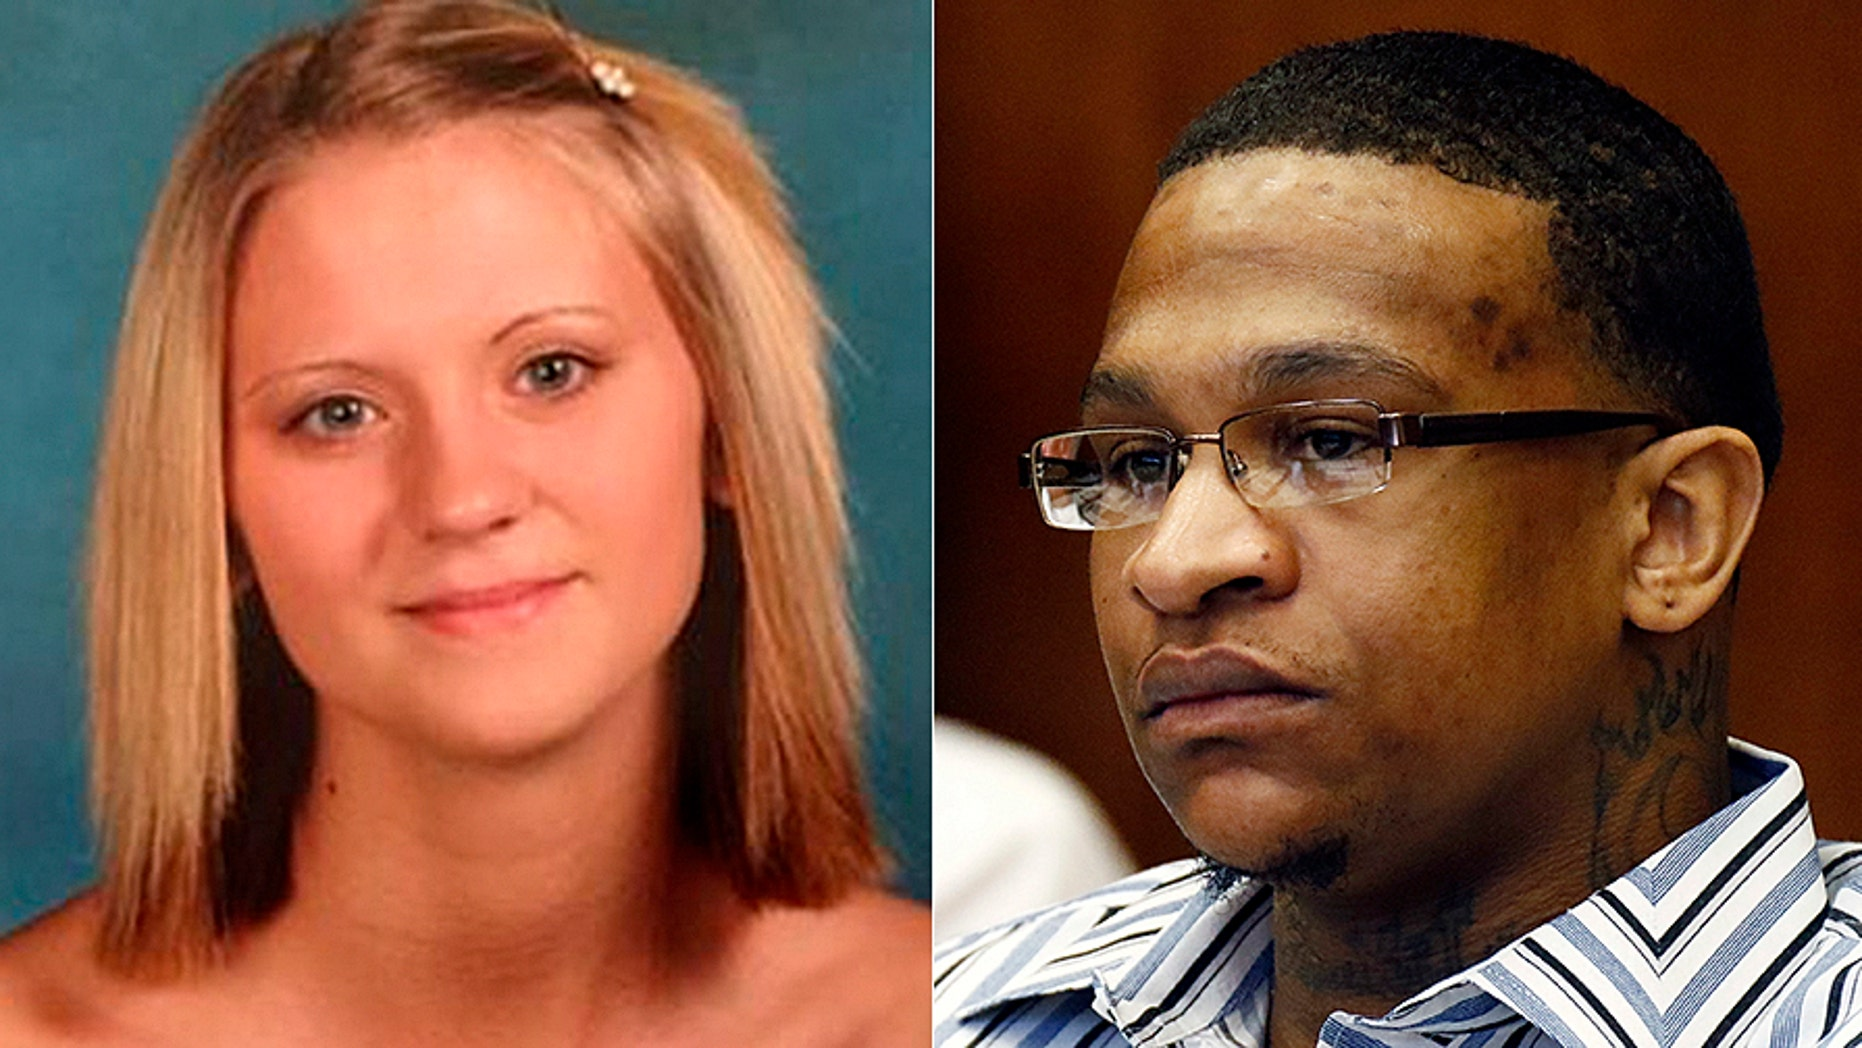 Quinton Tellis, right, is accused of burning 19-year-old Jessica Chambers alive in her car.